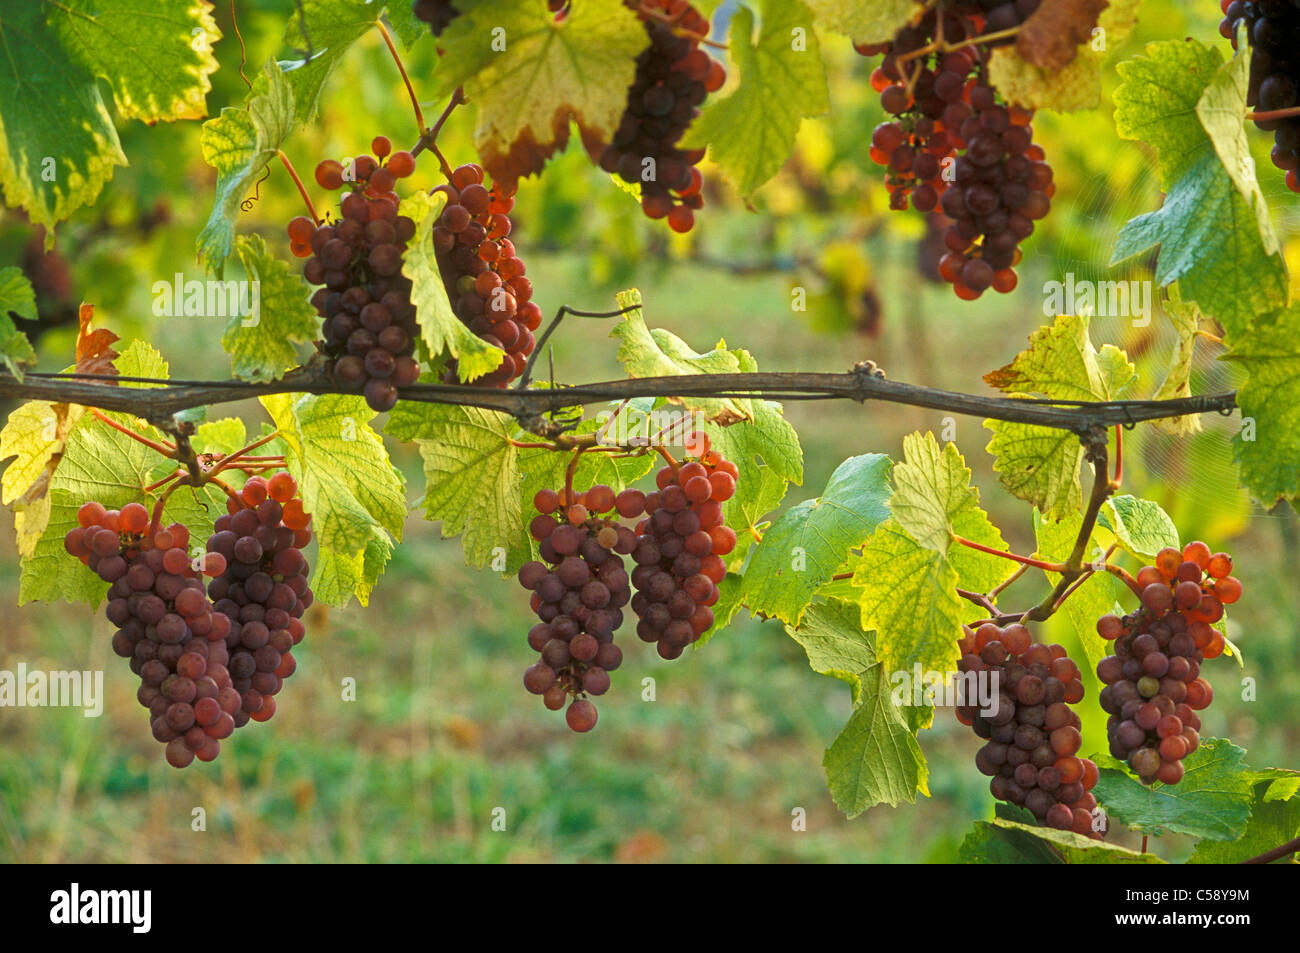 Pinot Gris wine grapes on vine; Champoeg Vineyards, Willamette Valley, Oregon. - Stock Image